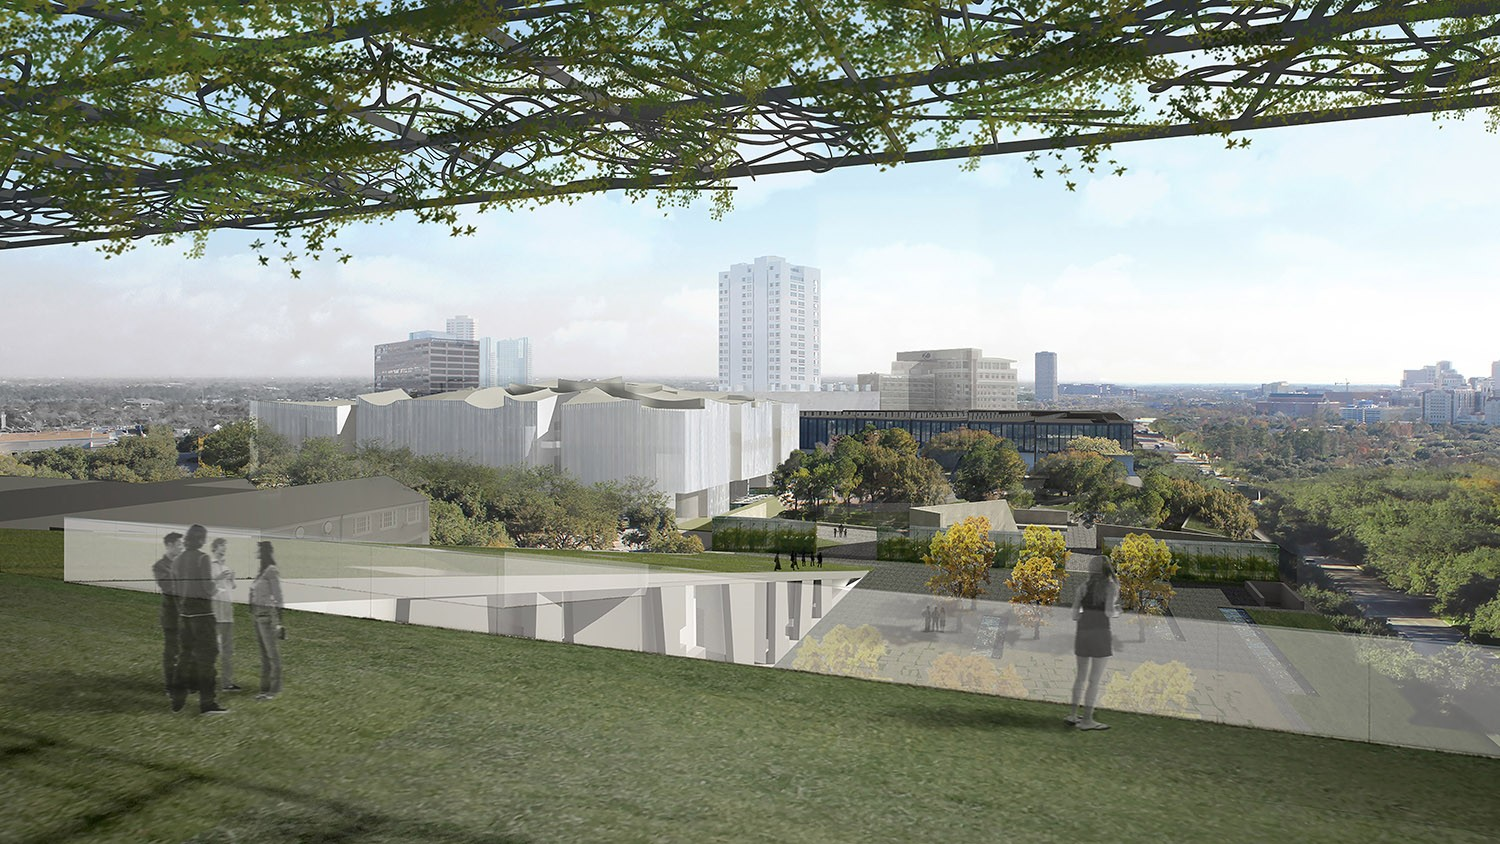 https://stevenholl.sfo2.digitaloceanspaces.com/uploads/projects/project-images/StevenHollArchitects_MFAH_SHA_02_view-from-glassell-rooftop-FINAL_WH.jpg